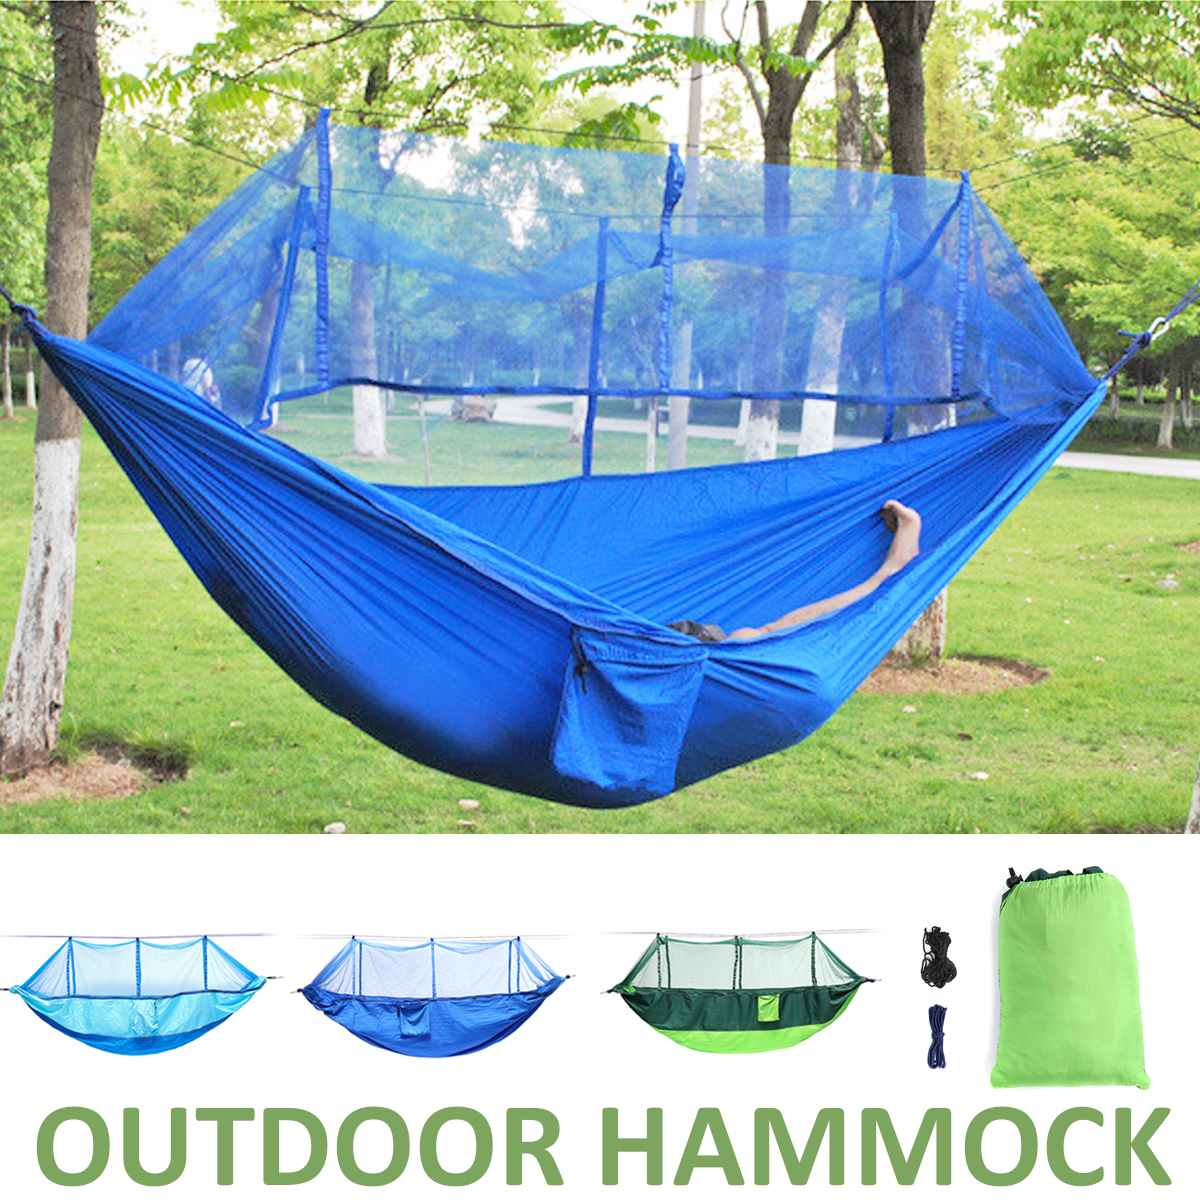 Portable 2 People Double Hammock With Mosquito Net Outdoor Travel Camping Tent Home Garden Parachute Hanging Swing Bed for KidsPortable 2 People Double Hammock With Mosquito Net Outdoor Travel Camping Tent Home Garden Parachute Hanging Swing Bed for Kids